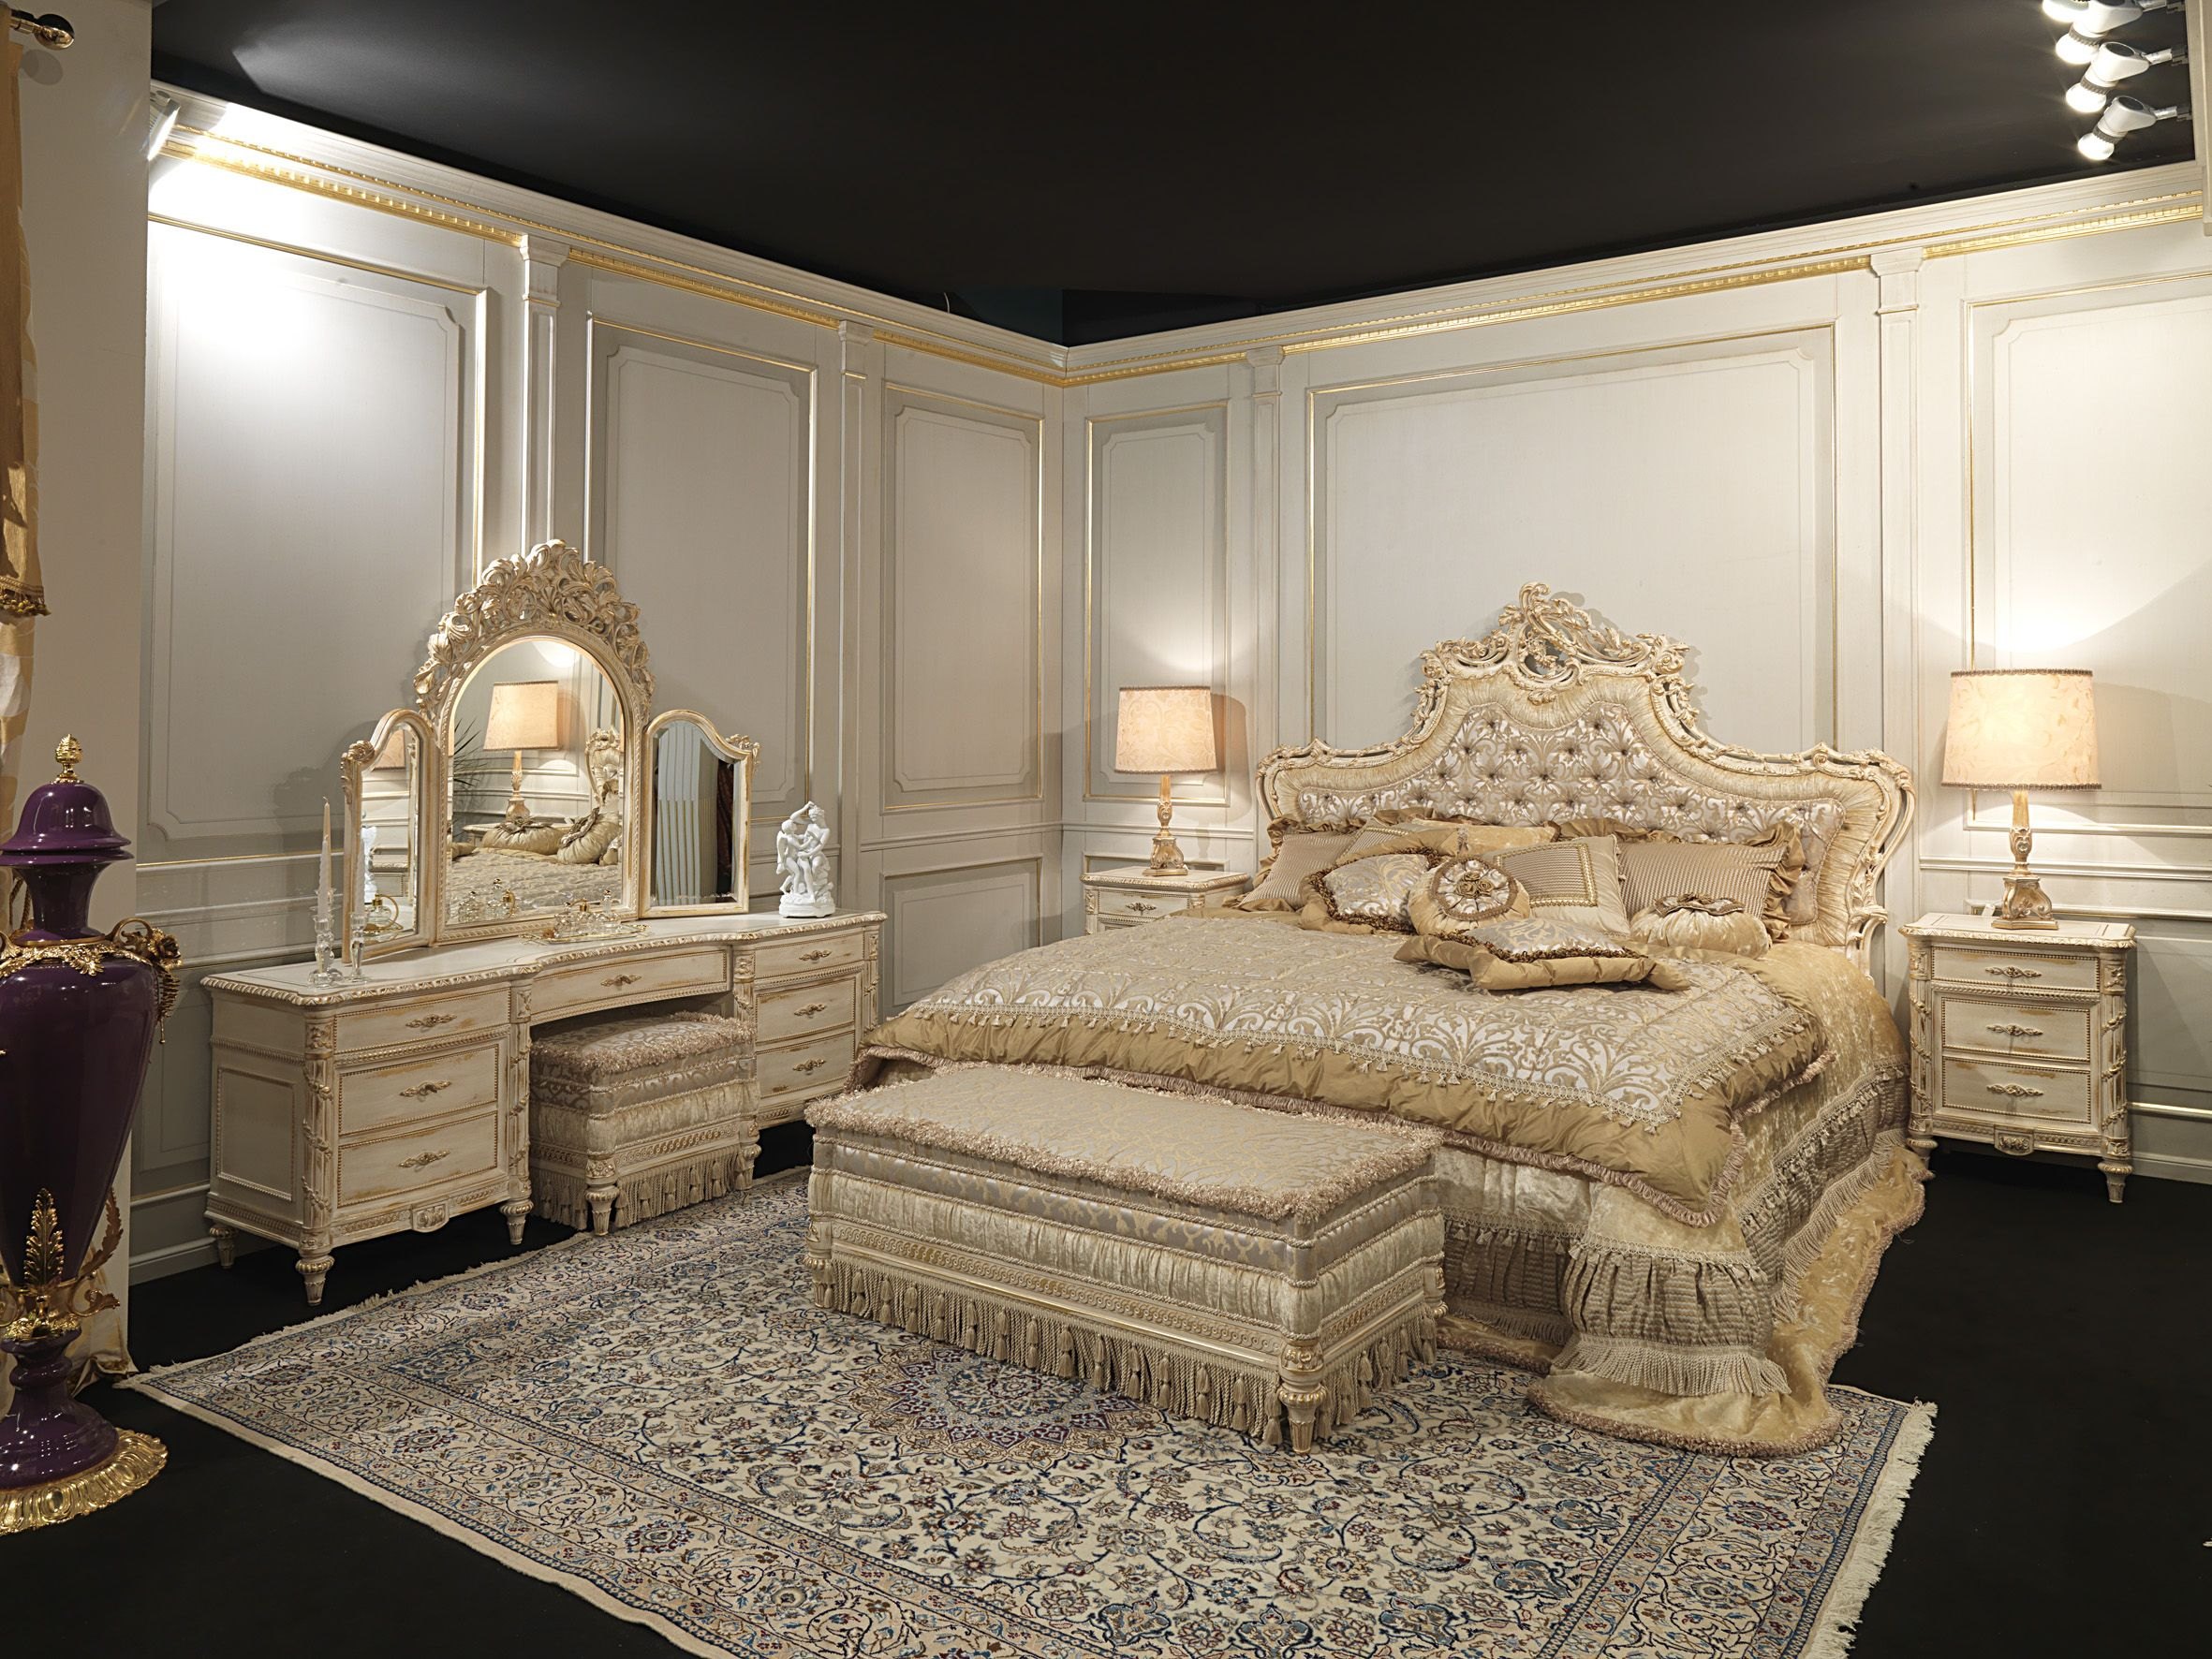 Louis xvi bedroom furniture - Classic Furniture Vimercati Meda Showroom 03 Www Vimercatimeda It